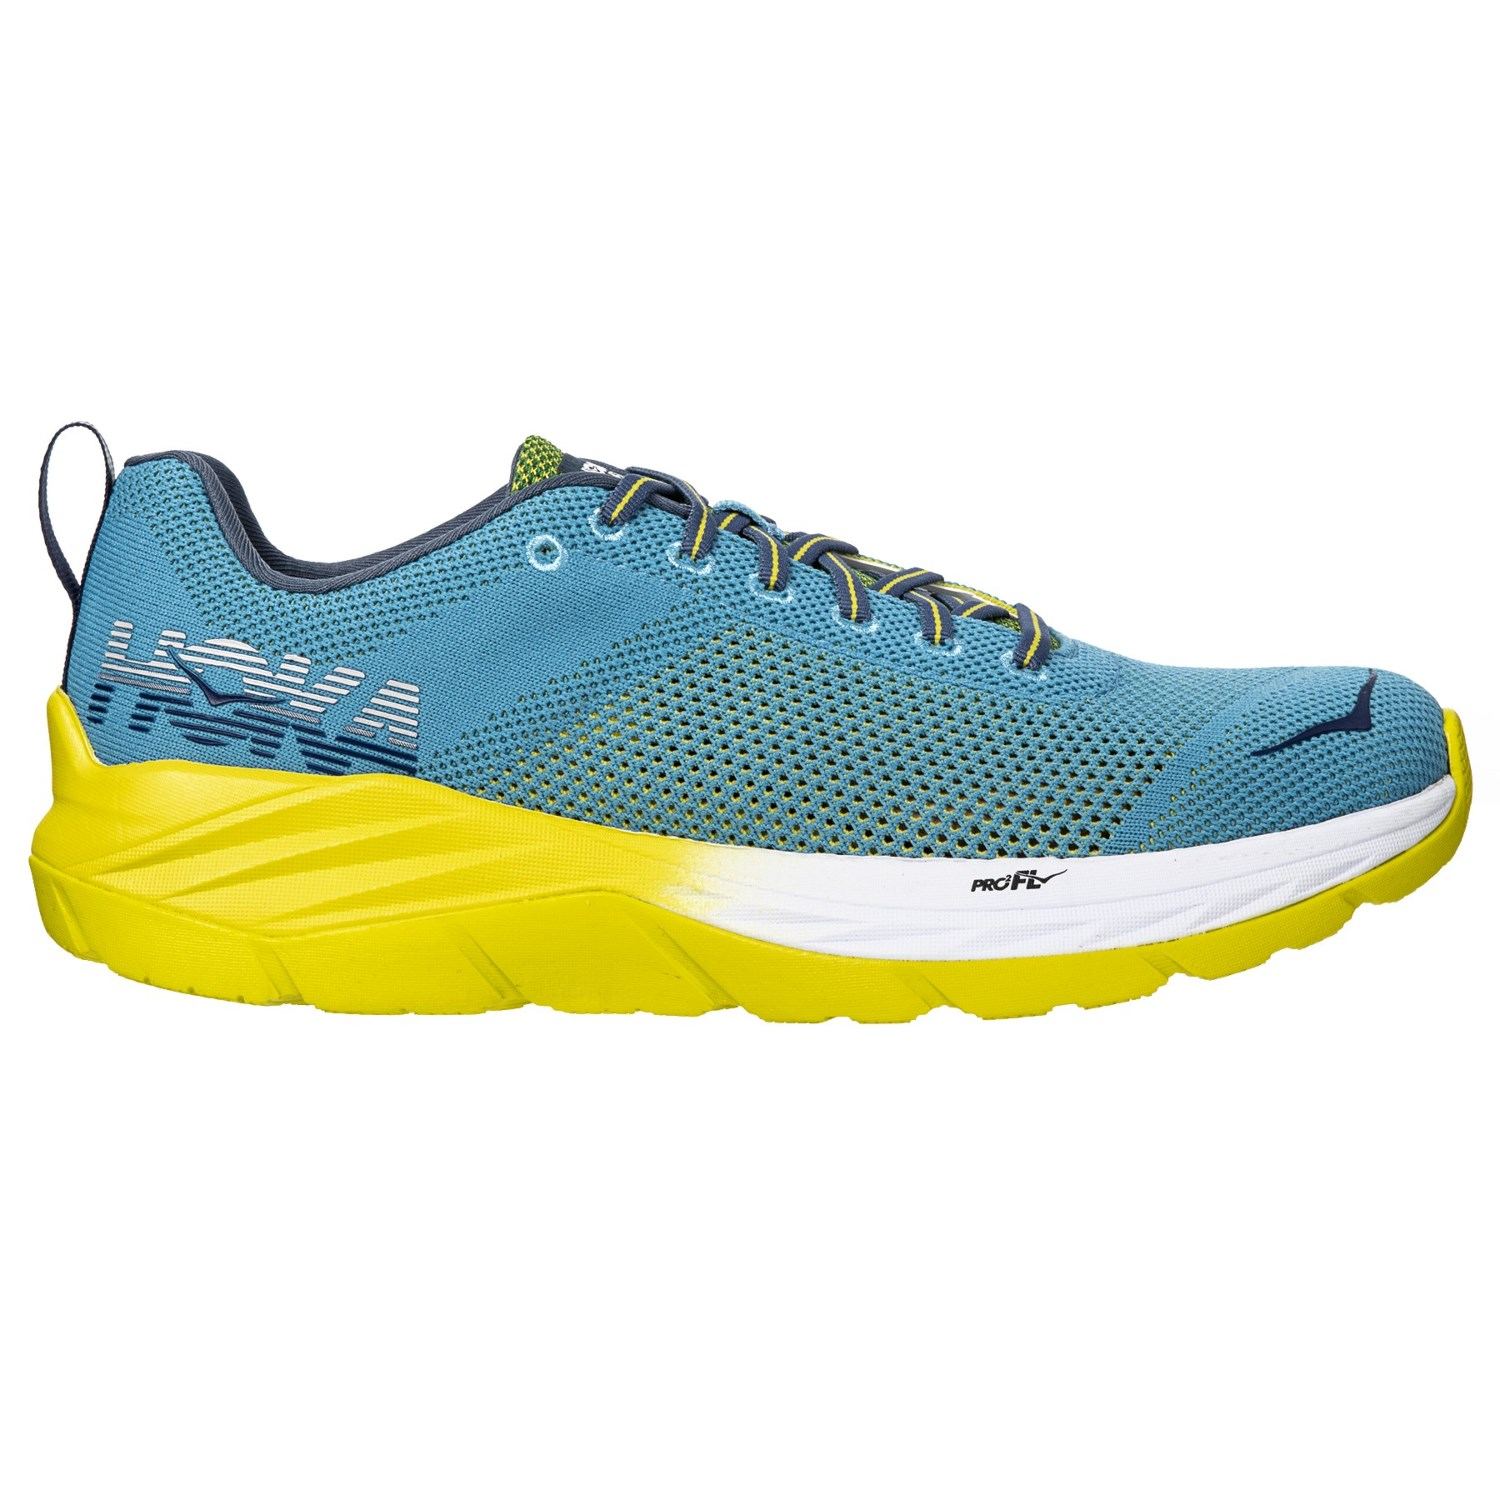 082f00631012e Hoka One One Mach Running Shoes (For Men) - Save 27%